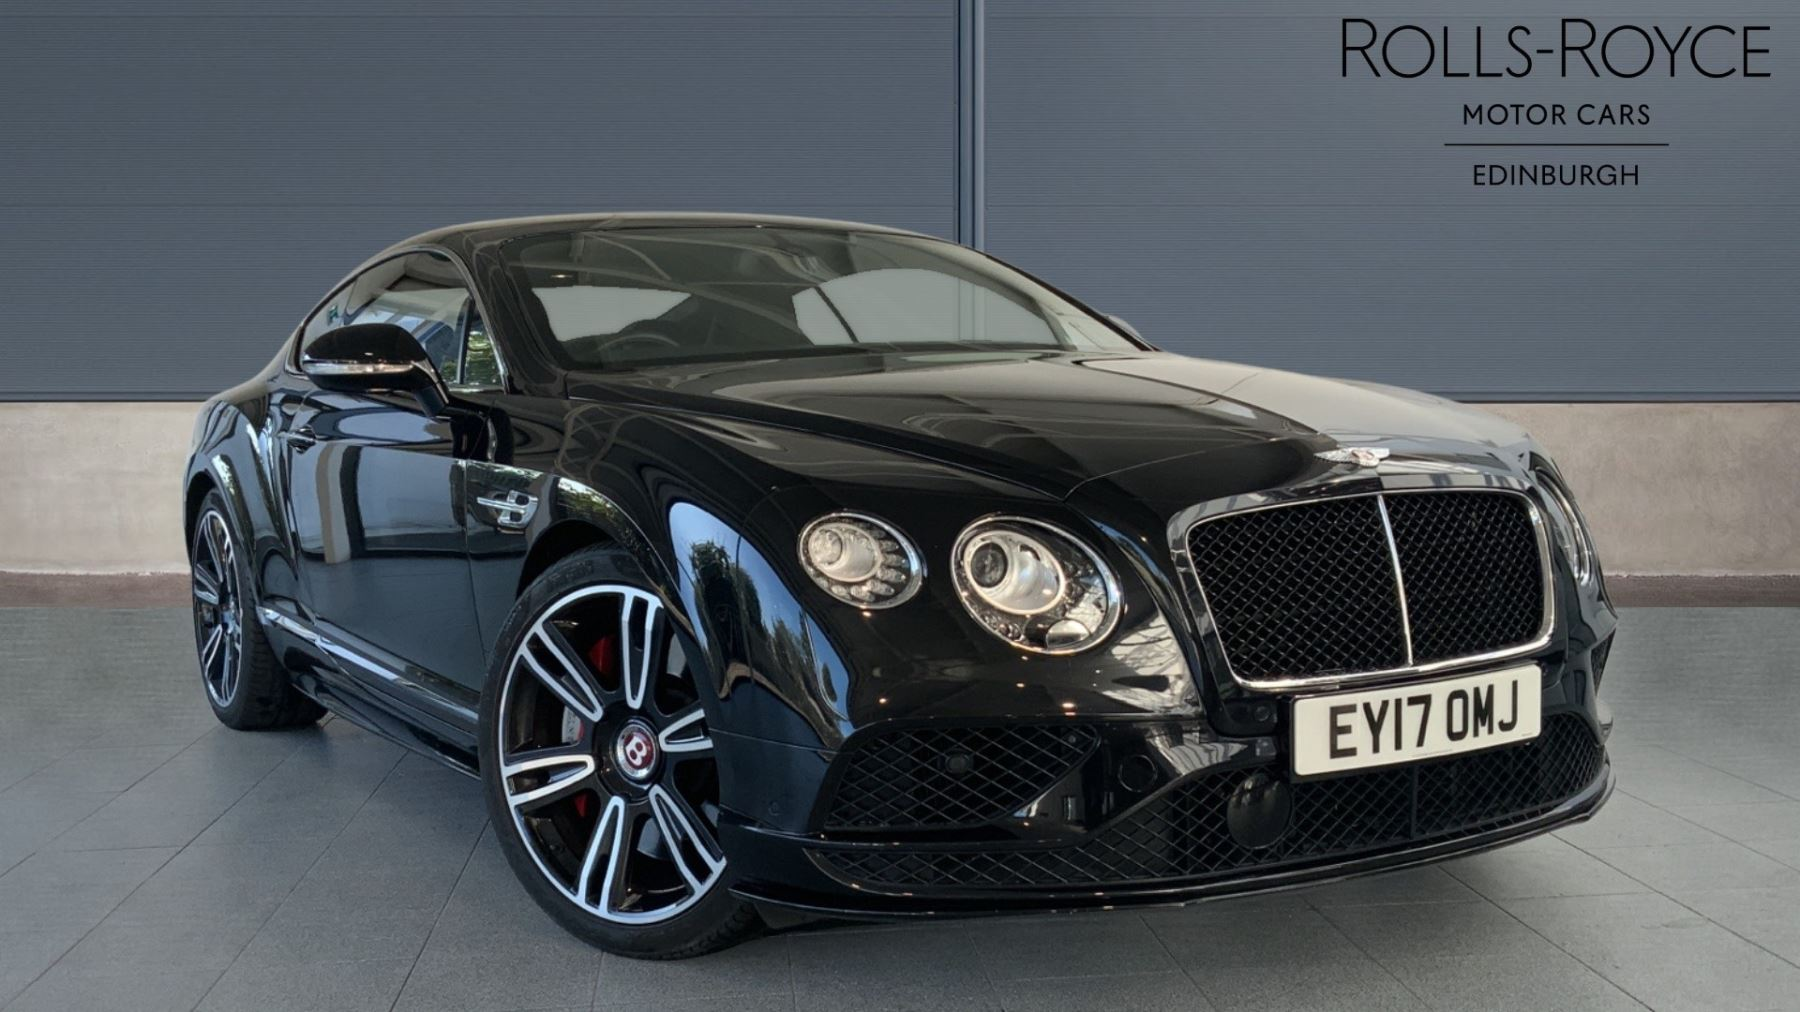 Bentley Continental GT 4.0 V8 S Mulliner Driving Spec - Sports Exhaust - Ventilated and Massage Seats Automatic 2 door Coupe